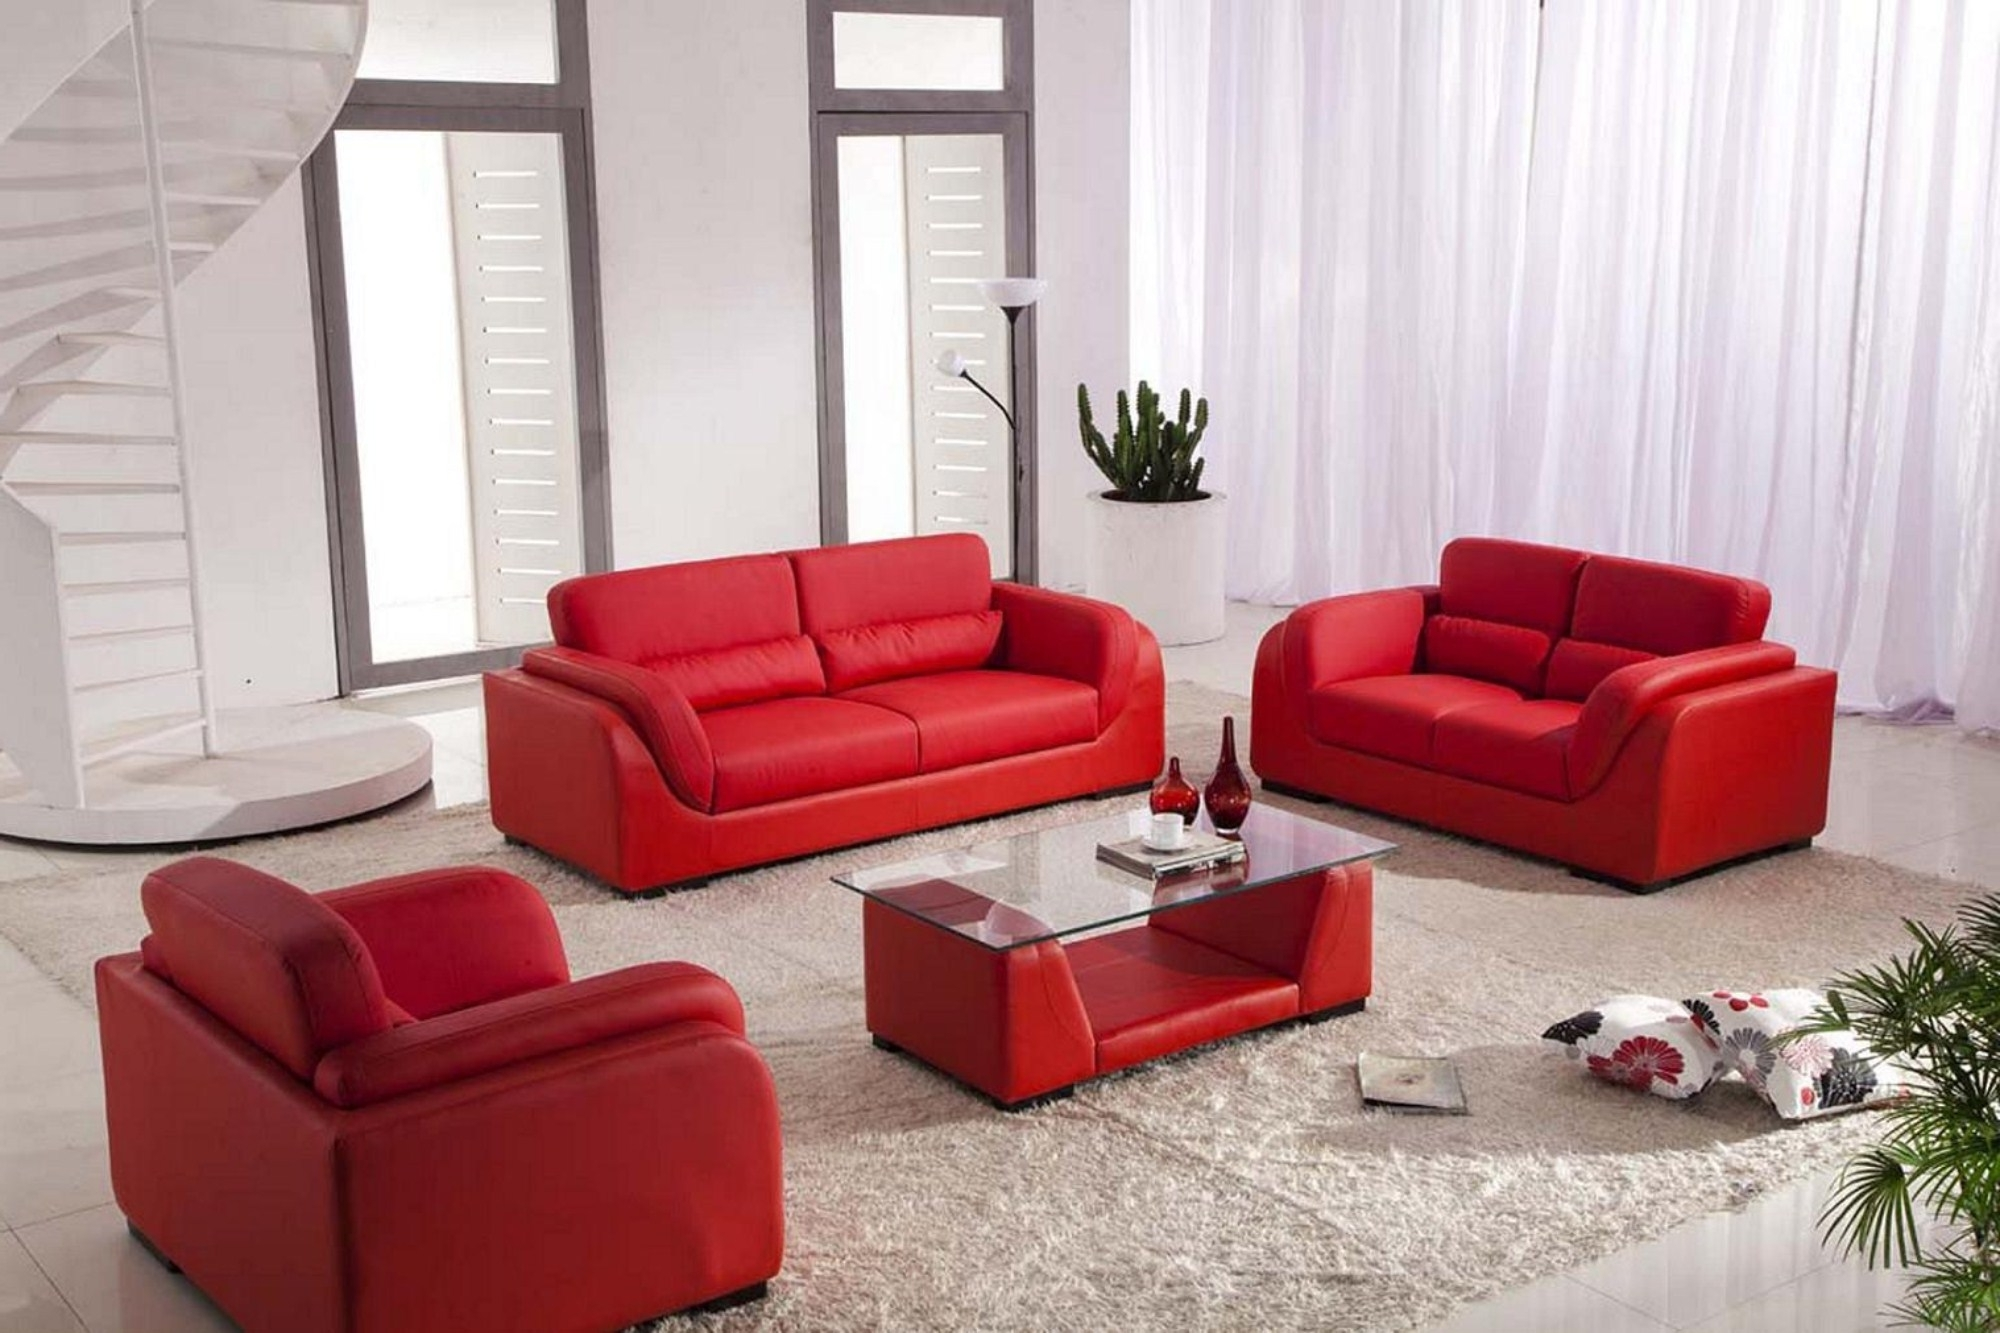 2019 Red Leather Couches For Living Room Pertaining To Living Room Attractive Ideas With Red Leather Sofa And Glass Table (View 16 of 20)